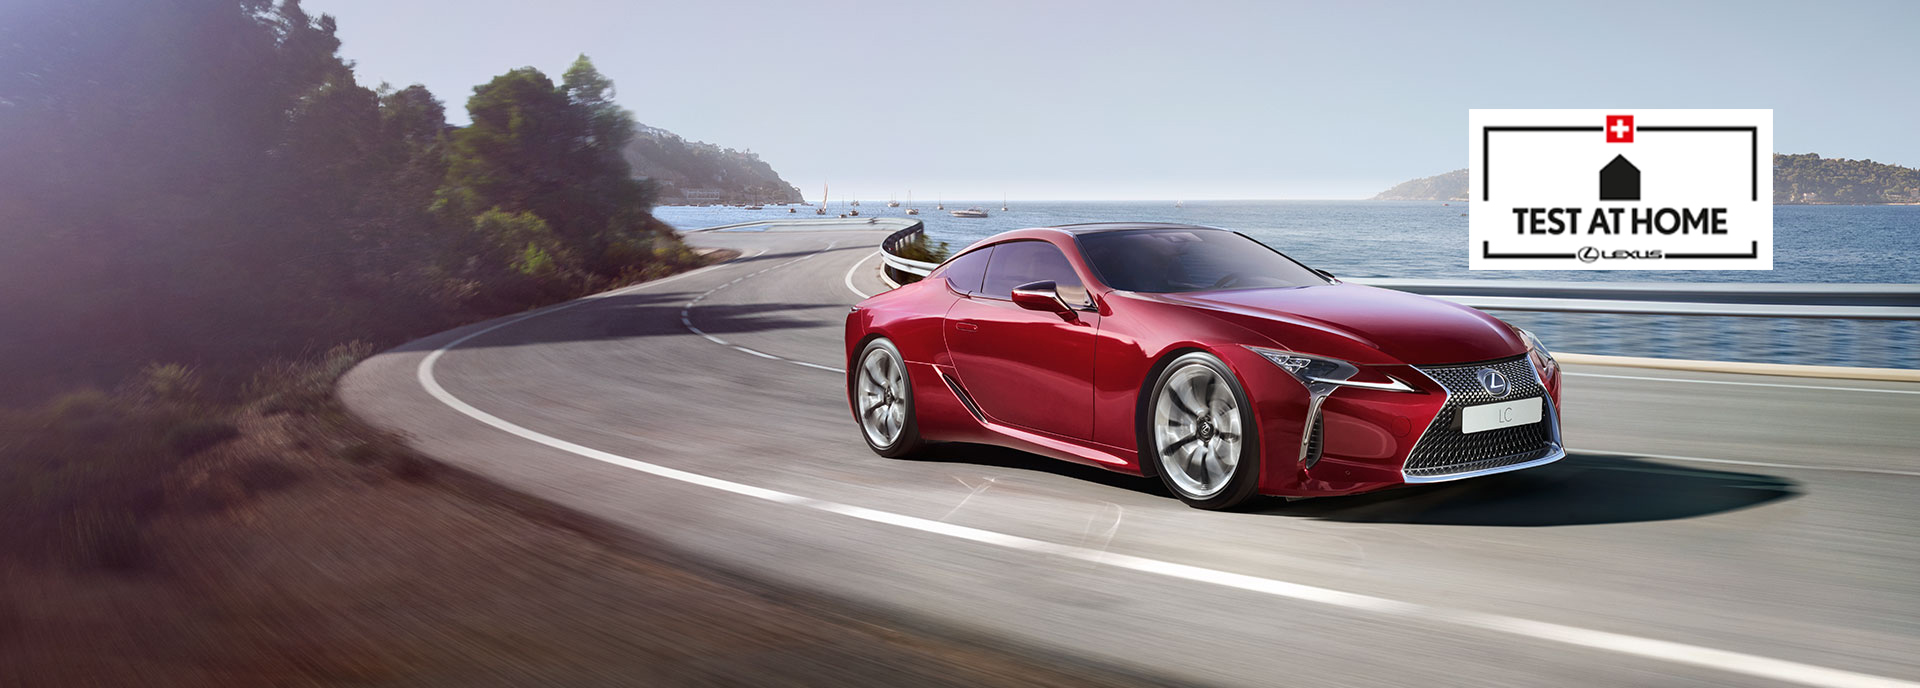 LC 500h Test Home 1920